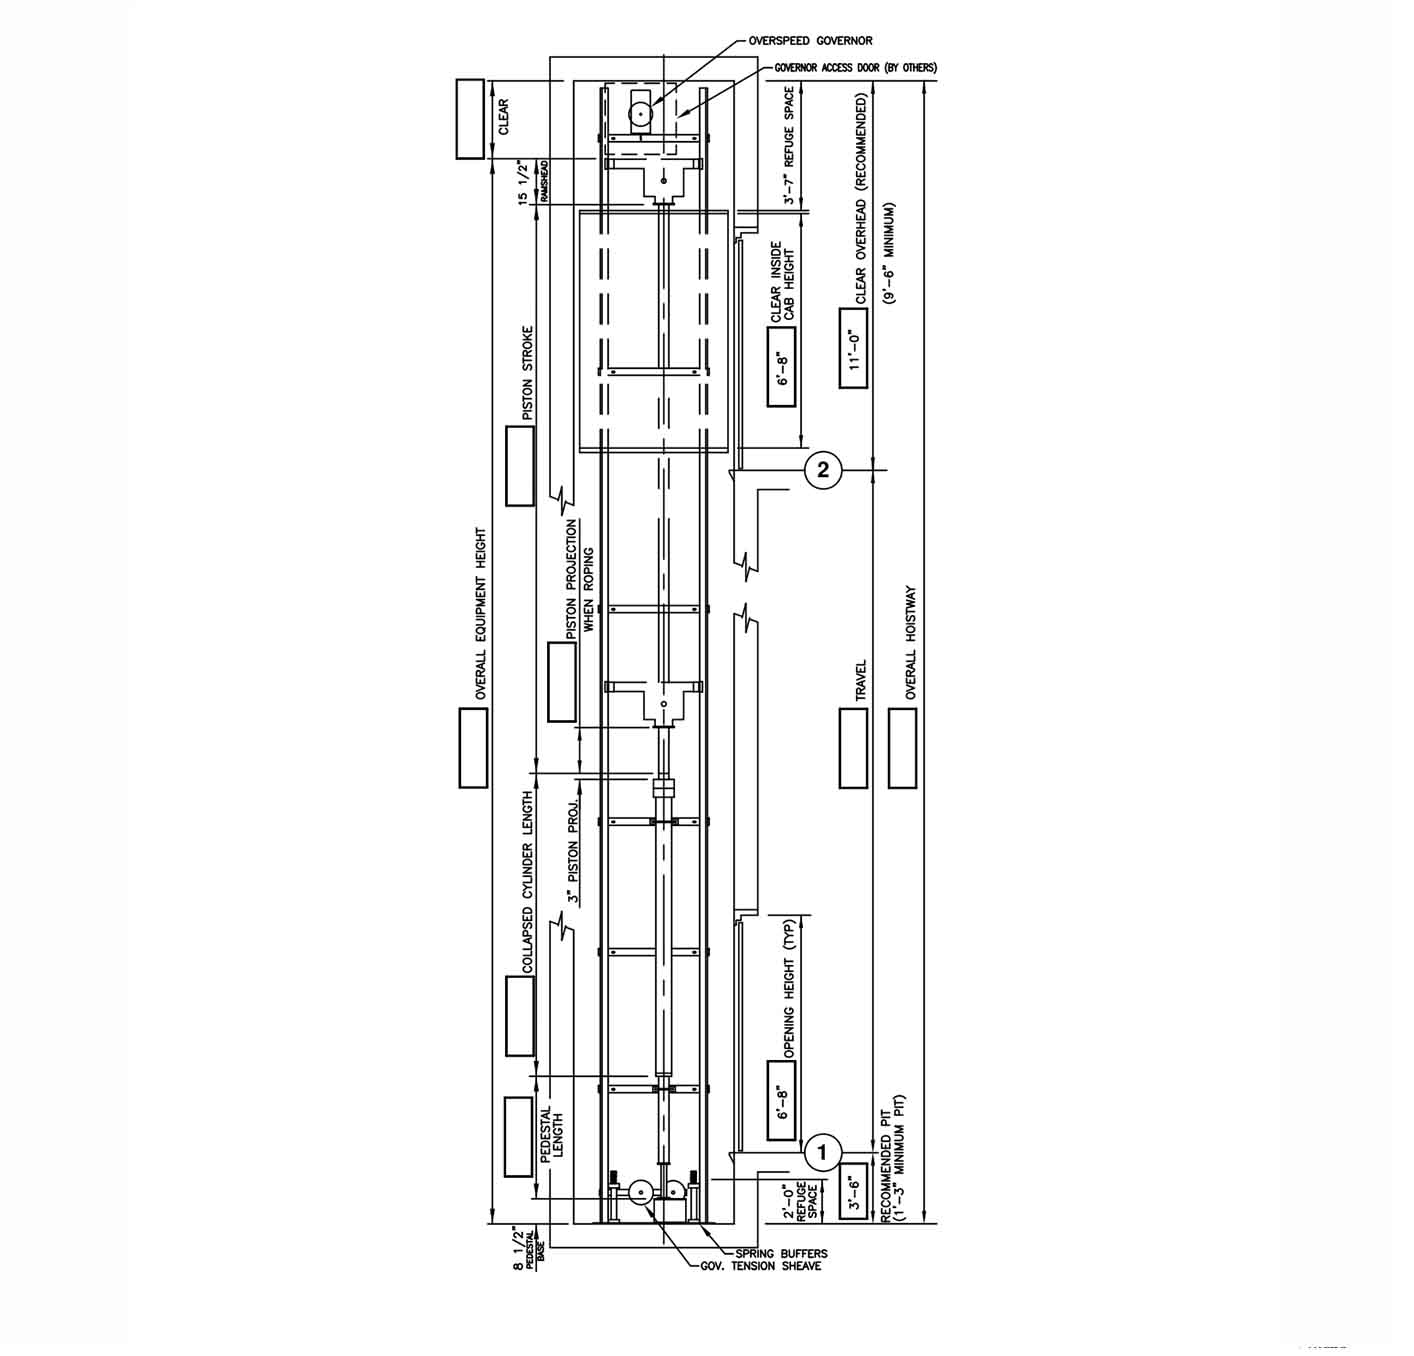 Elevator Specifications Dwg Block For Autocad likewise 2121 Wash Basin Plumbing Details in addition caddetails moreover Lift Truck Dwg Detail For Autocad also Elevators. on lift dwg detail for autocad